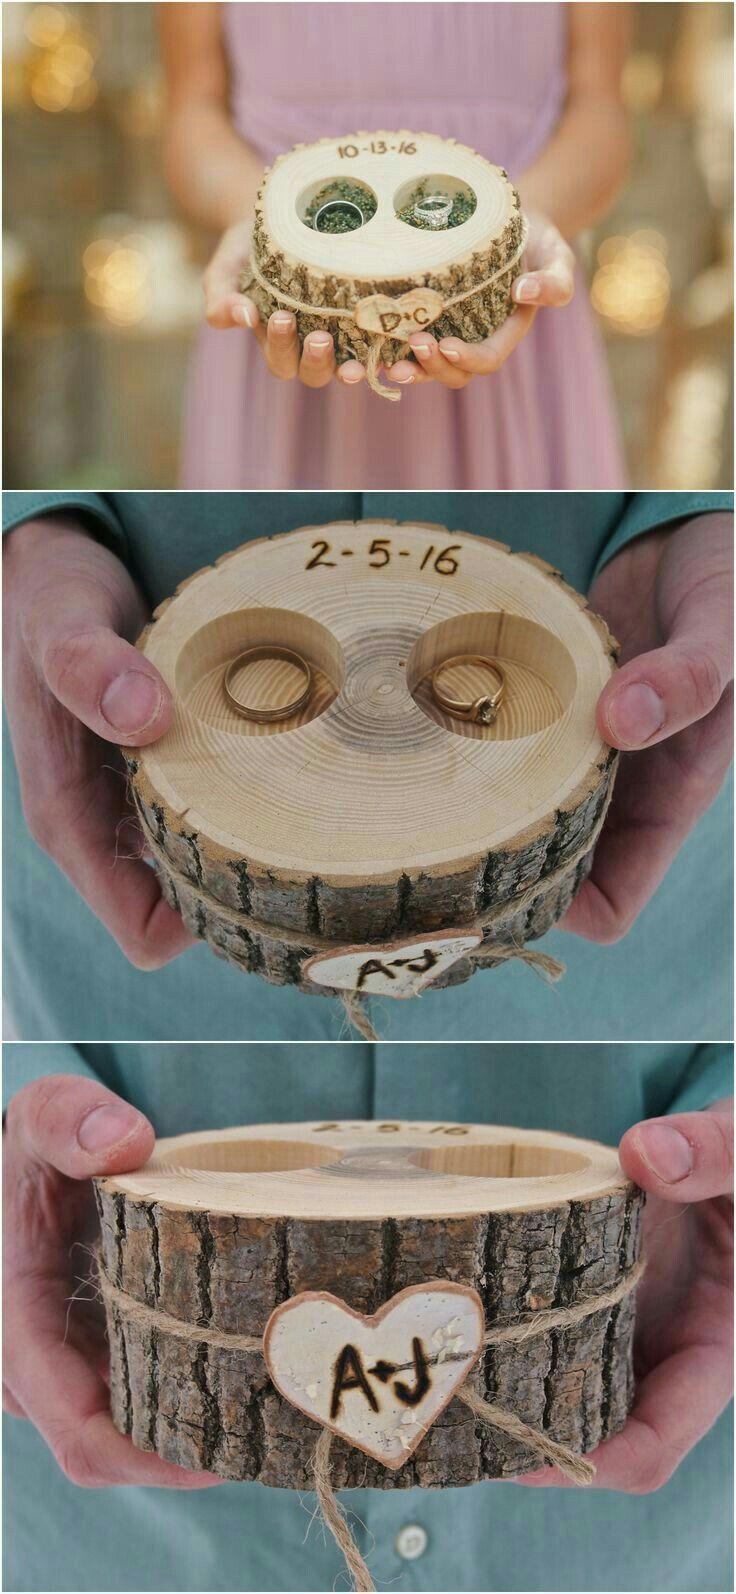 Personalized ring box! So Adorable!! Fabriquer vot…